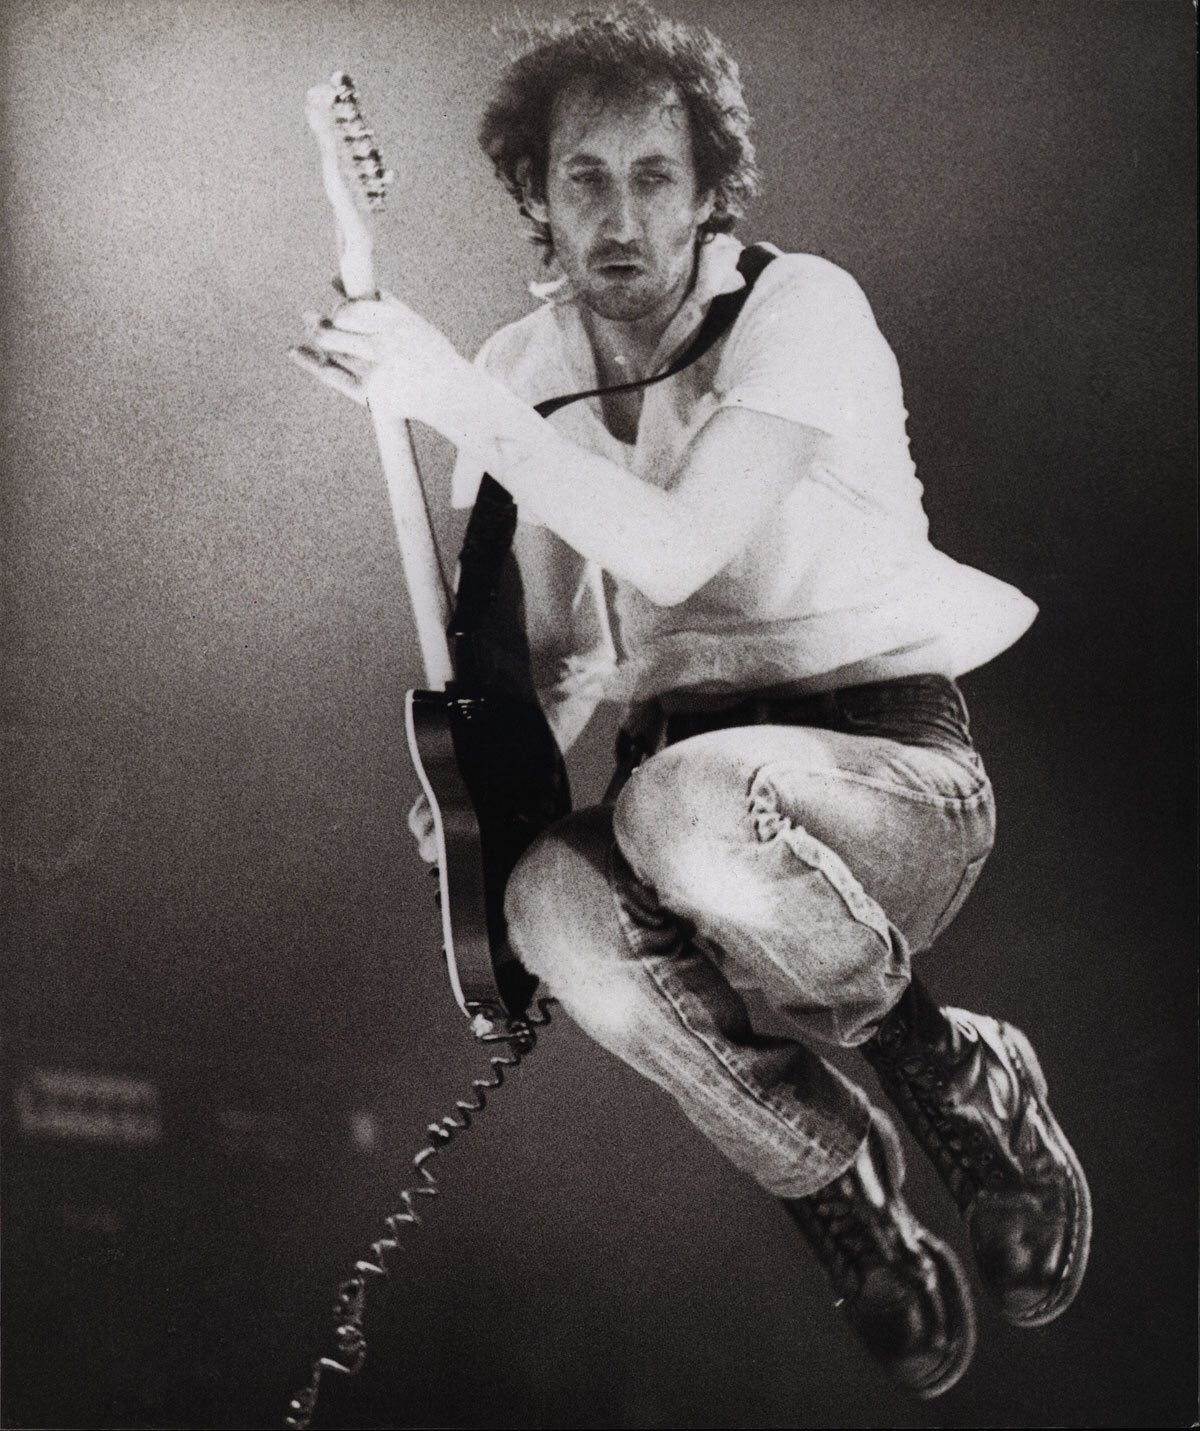 Happy Birthday to legendary guitarist, Pete Townshend of